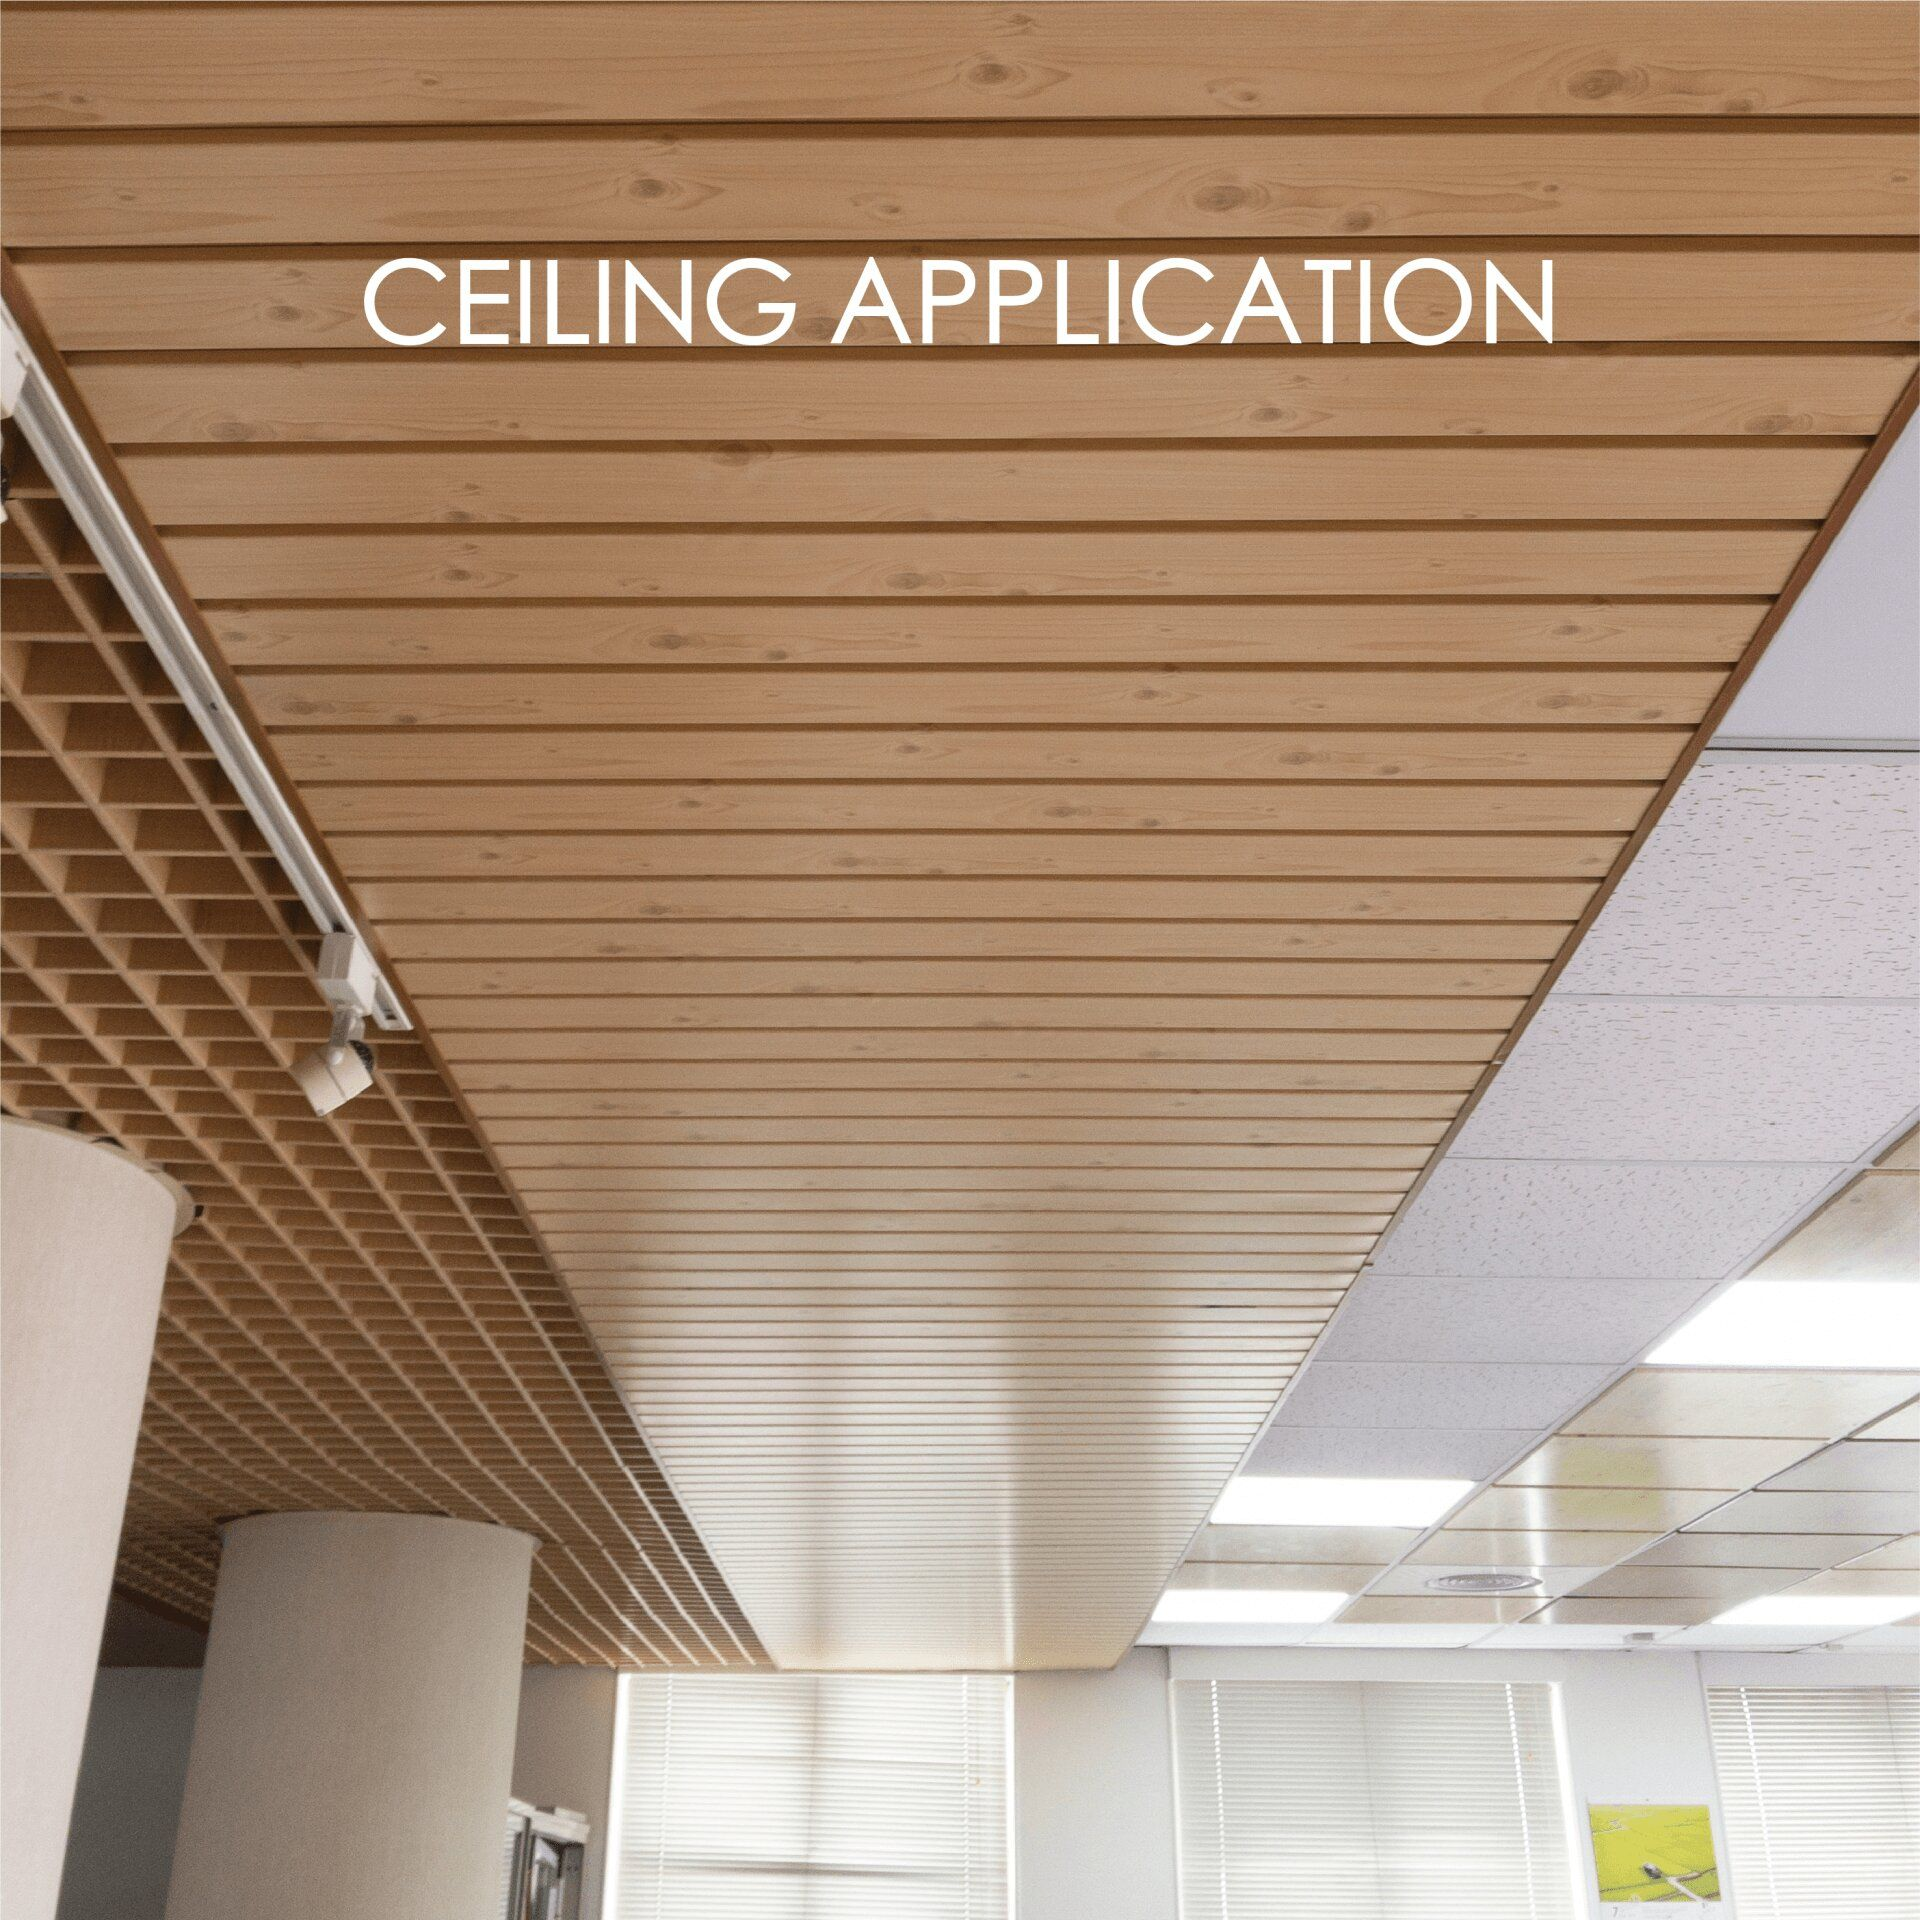 The use of coated metal to make ceilings adds decorative and durability